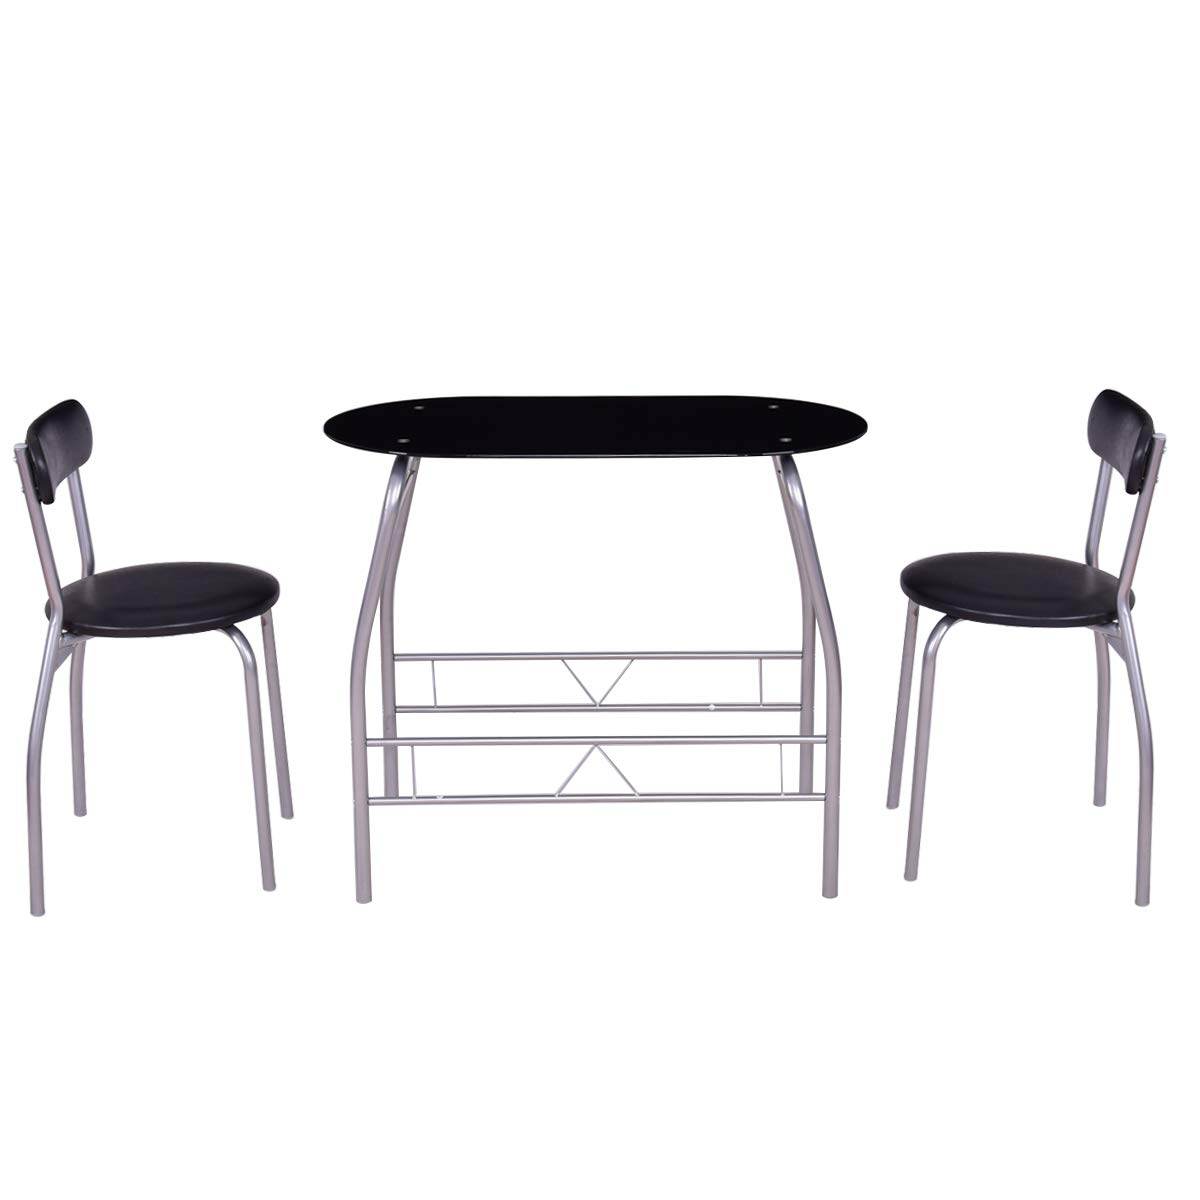 Dawndior 3 Piece Dining Home Kitchen Bistro Pub Breakfast Furniture Metal Frame Glass Top Table and 2 Chairs Set,Black and Silver